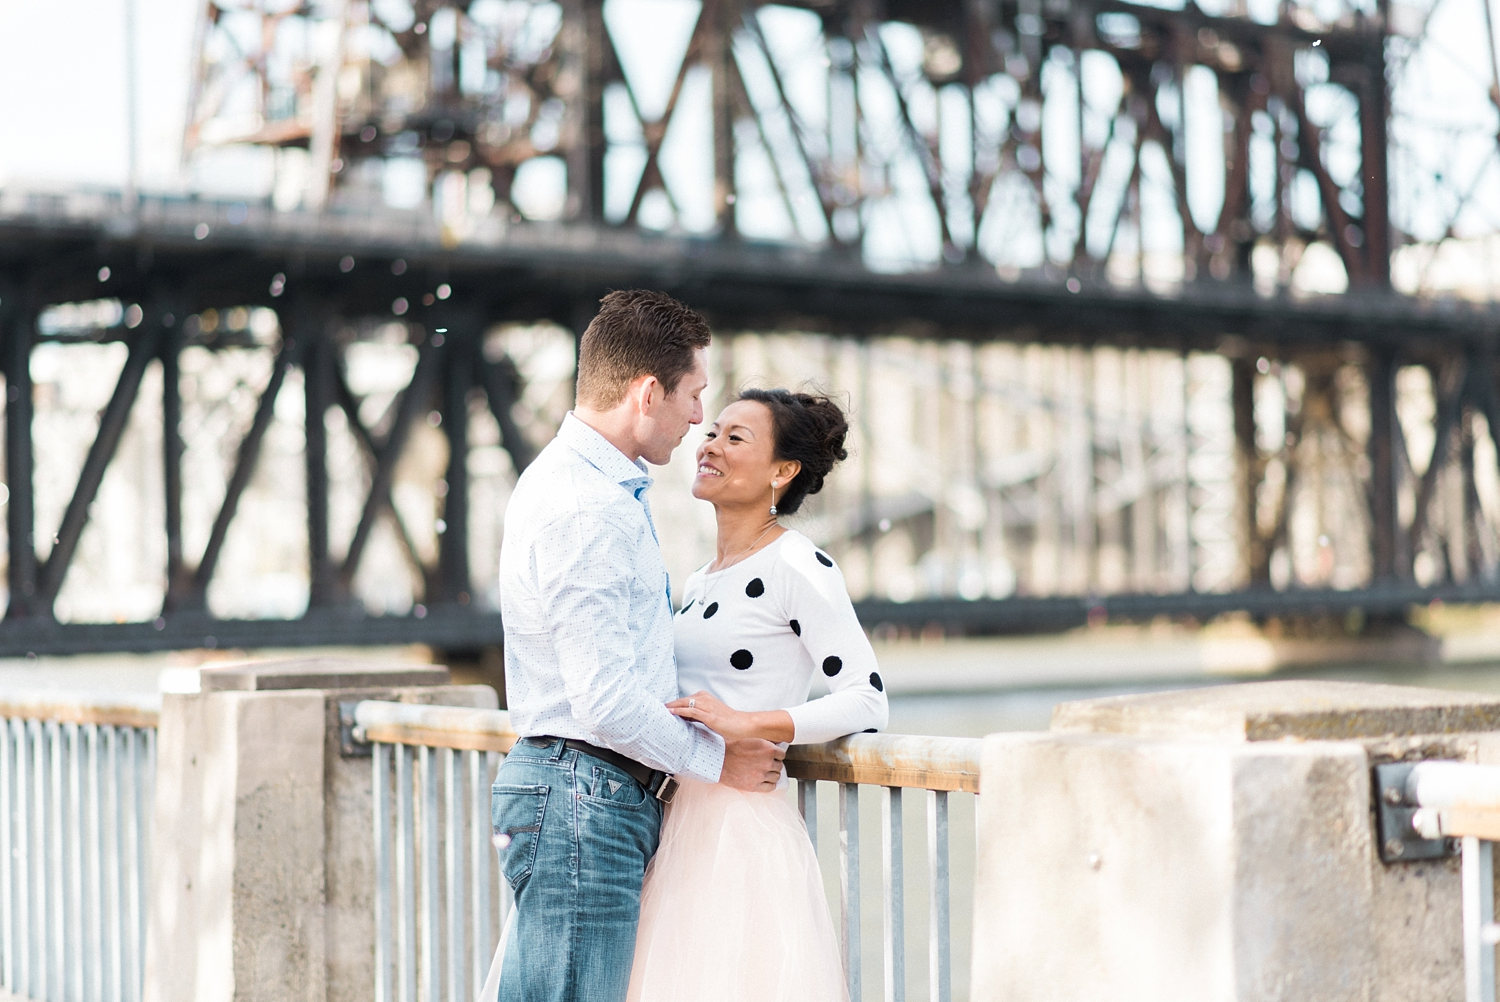 portland-waterfront-engagement-cherry-blossom-cathedral-park-sokhorn-jay-078_cr.jpg